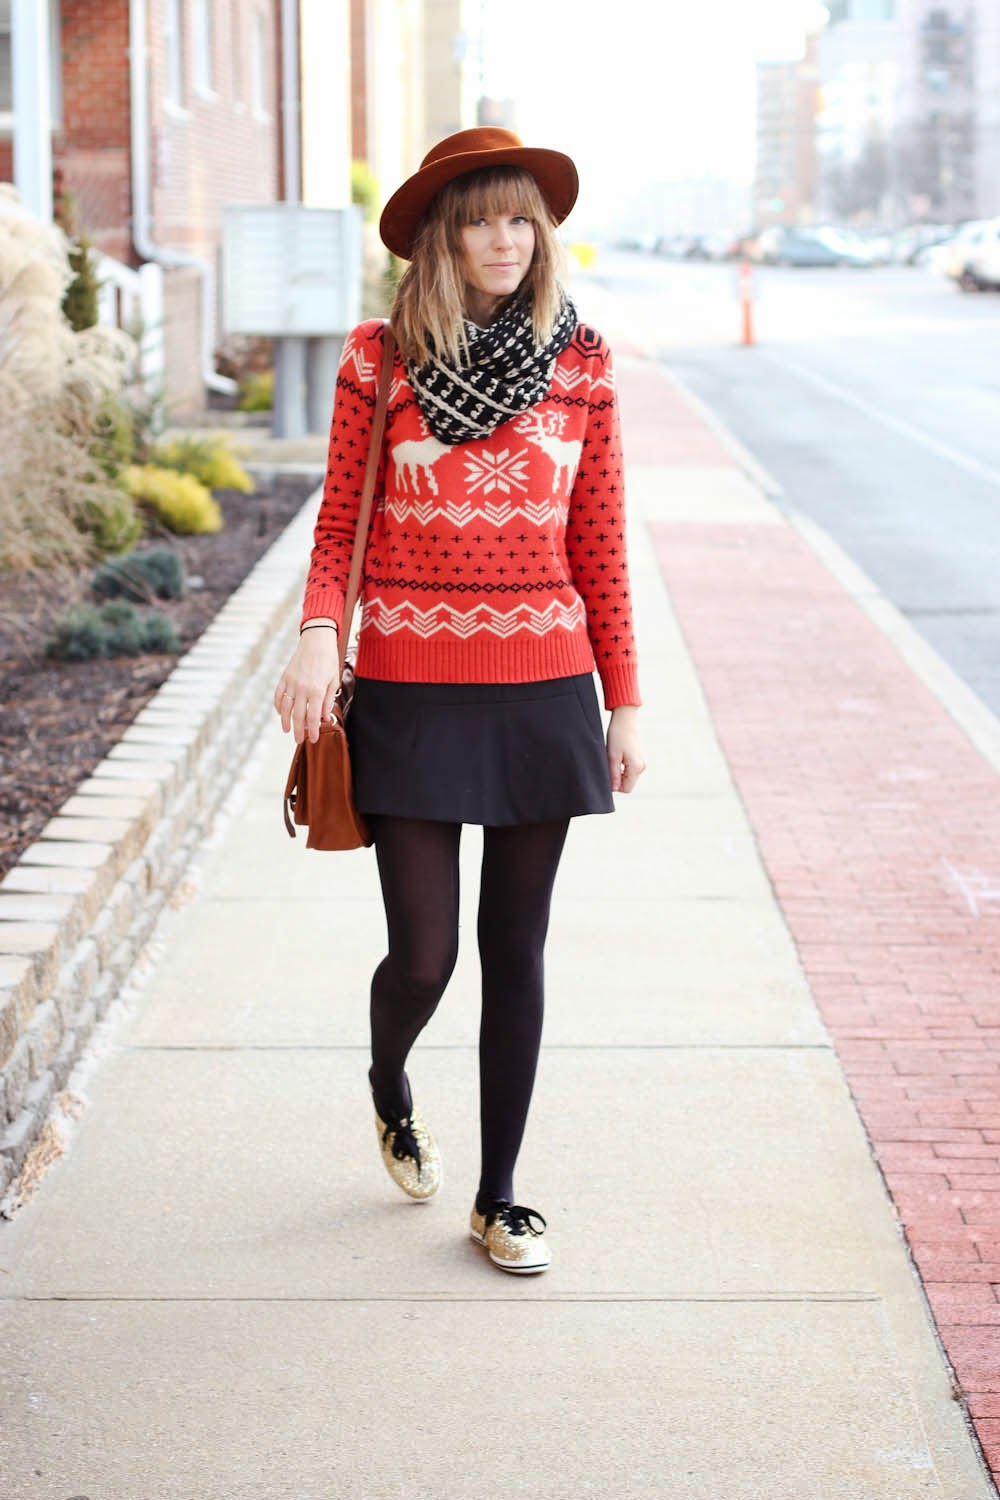 reindeer sweater, kate spade glitter keds, vintage fashion blog, ny vintage blog, nyc vintage blog, fall outfit post